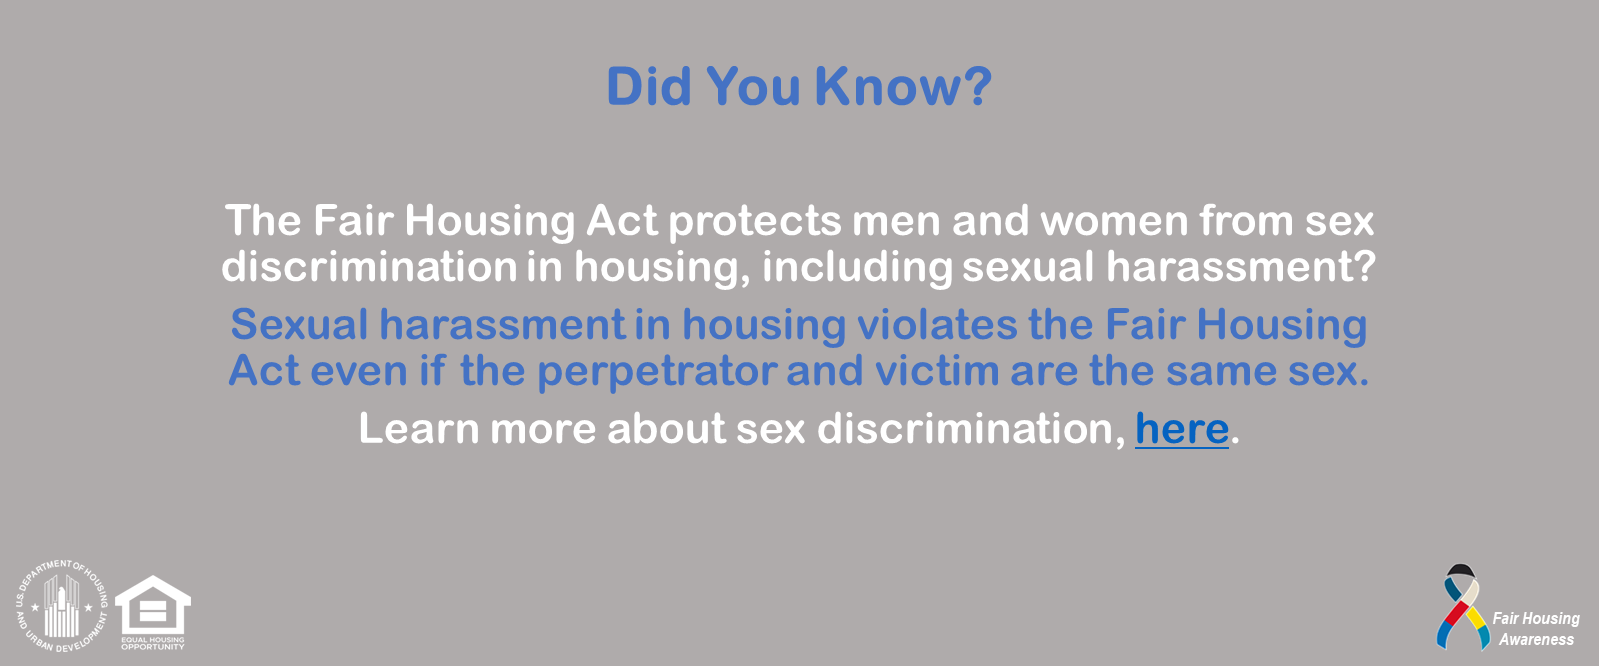 [The Fair Housing Act protects men and women from sex discrimination in housing, including sexual harassment.]. HUD Photo